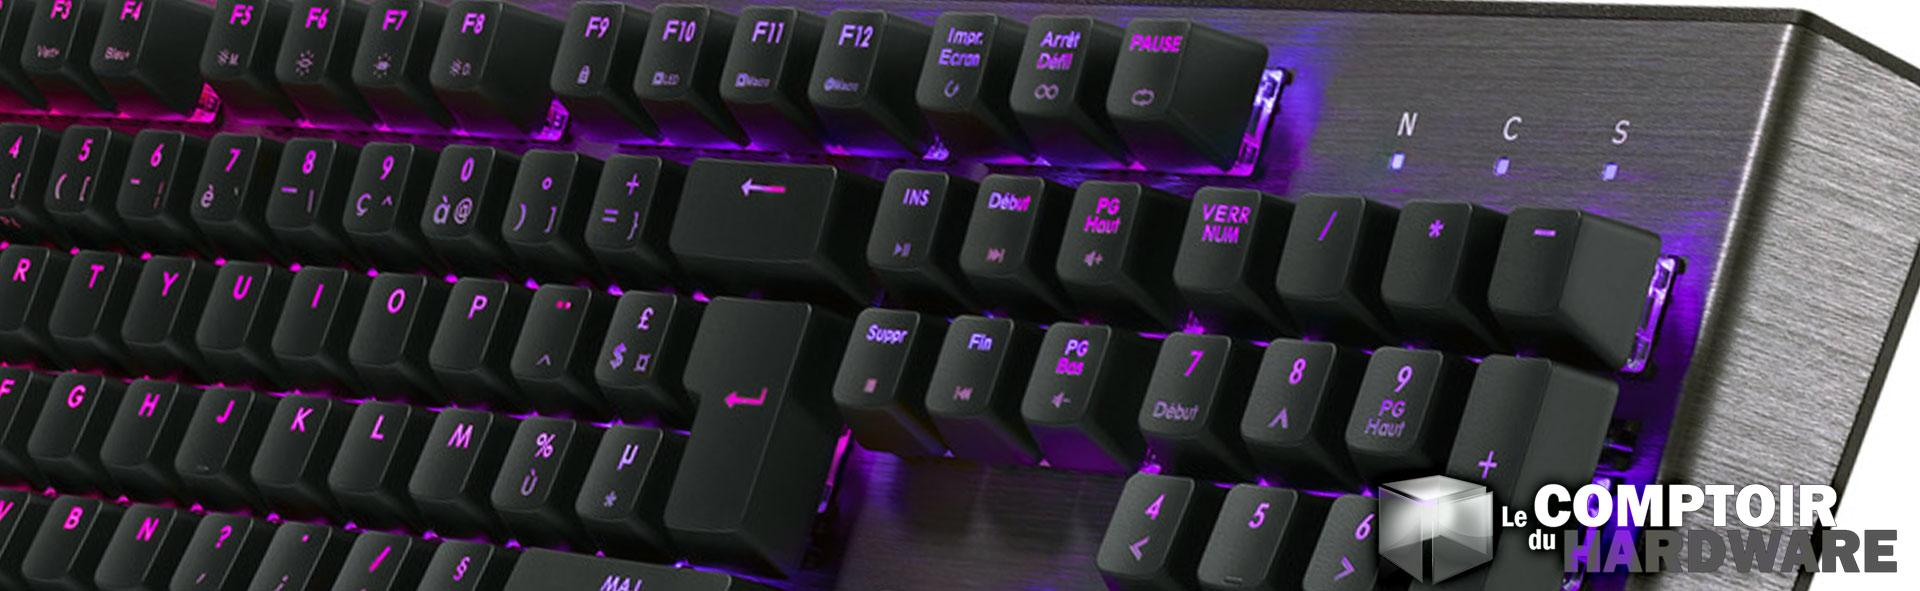 review cooler master ck550